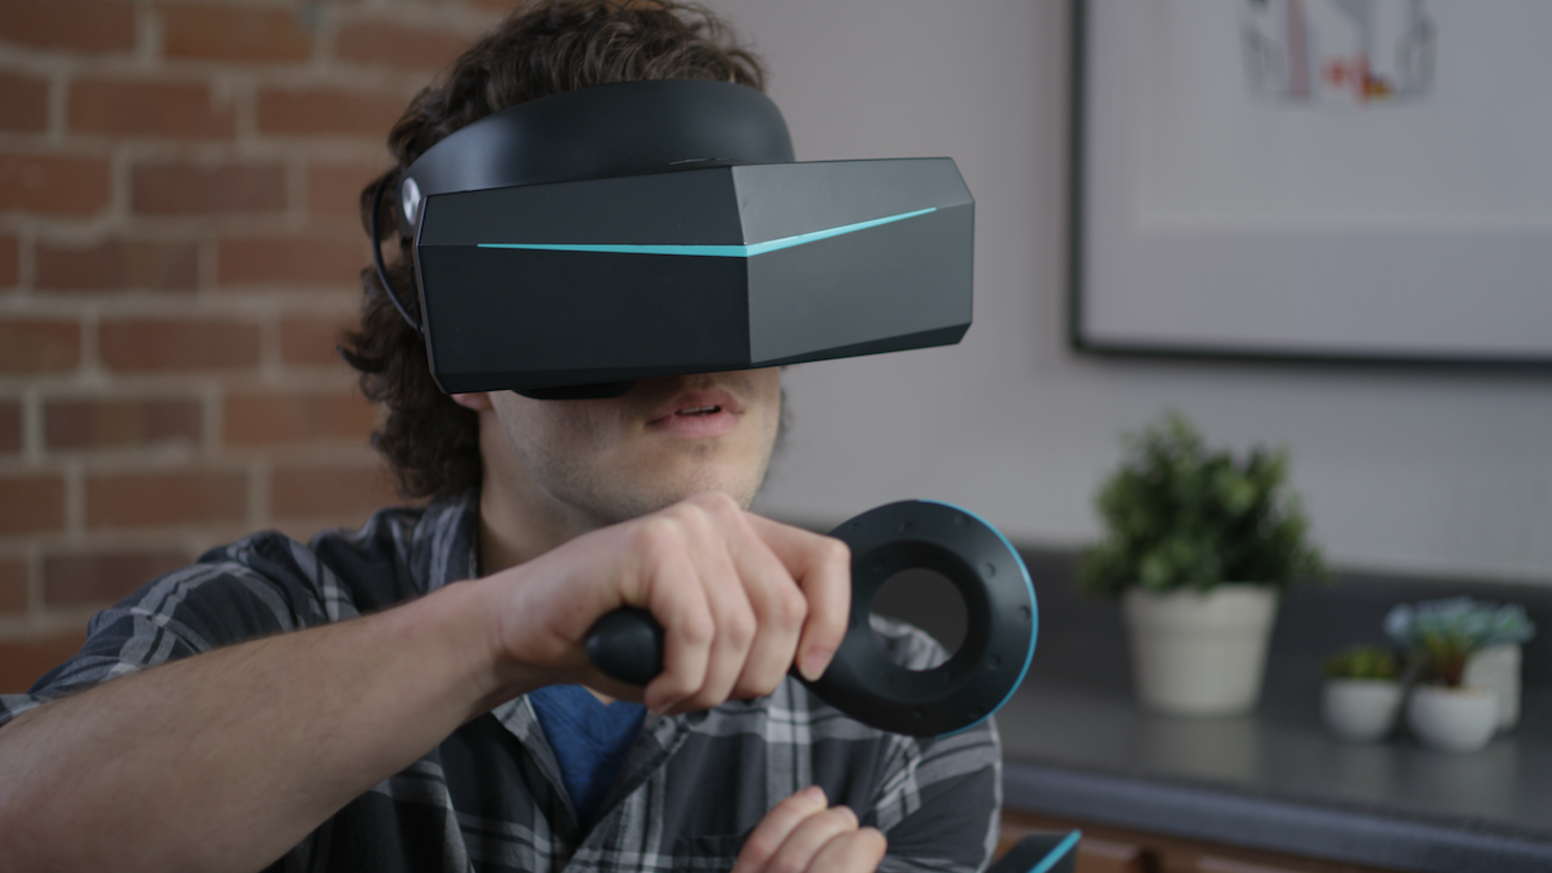 Pimax: The World's First 8K VR Headset by Pimax 8K VR — Kickstarter